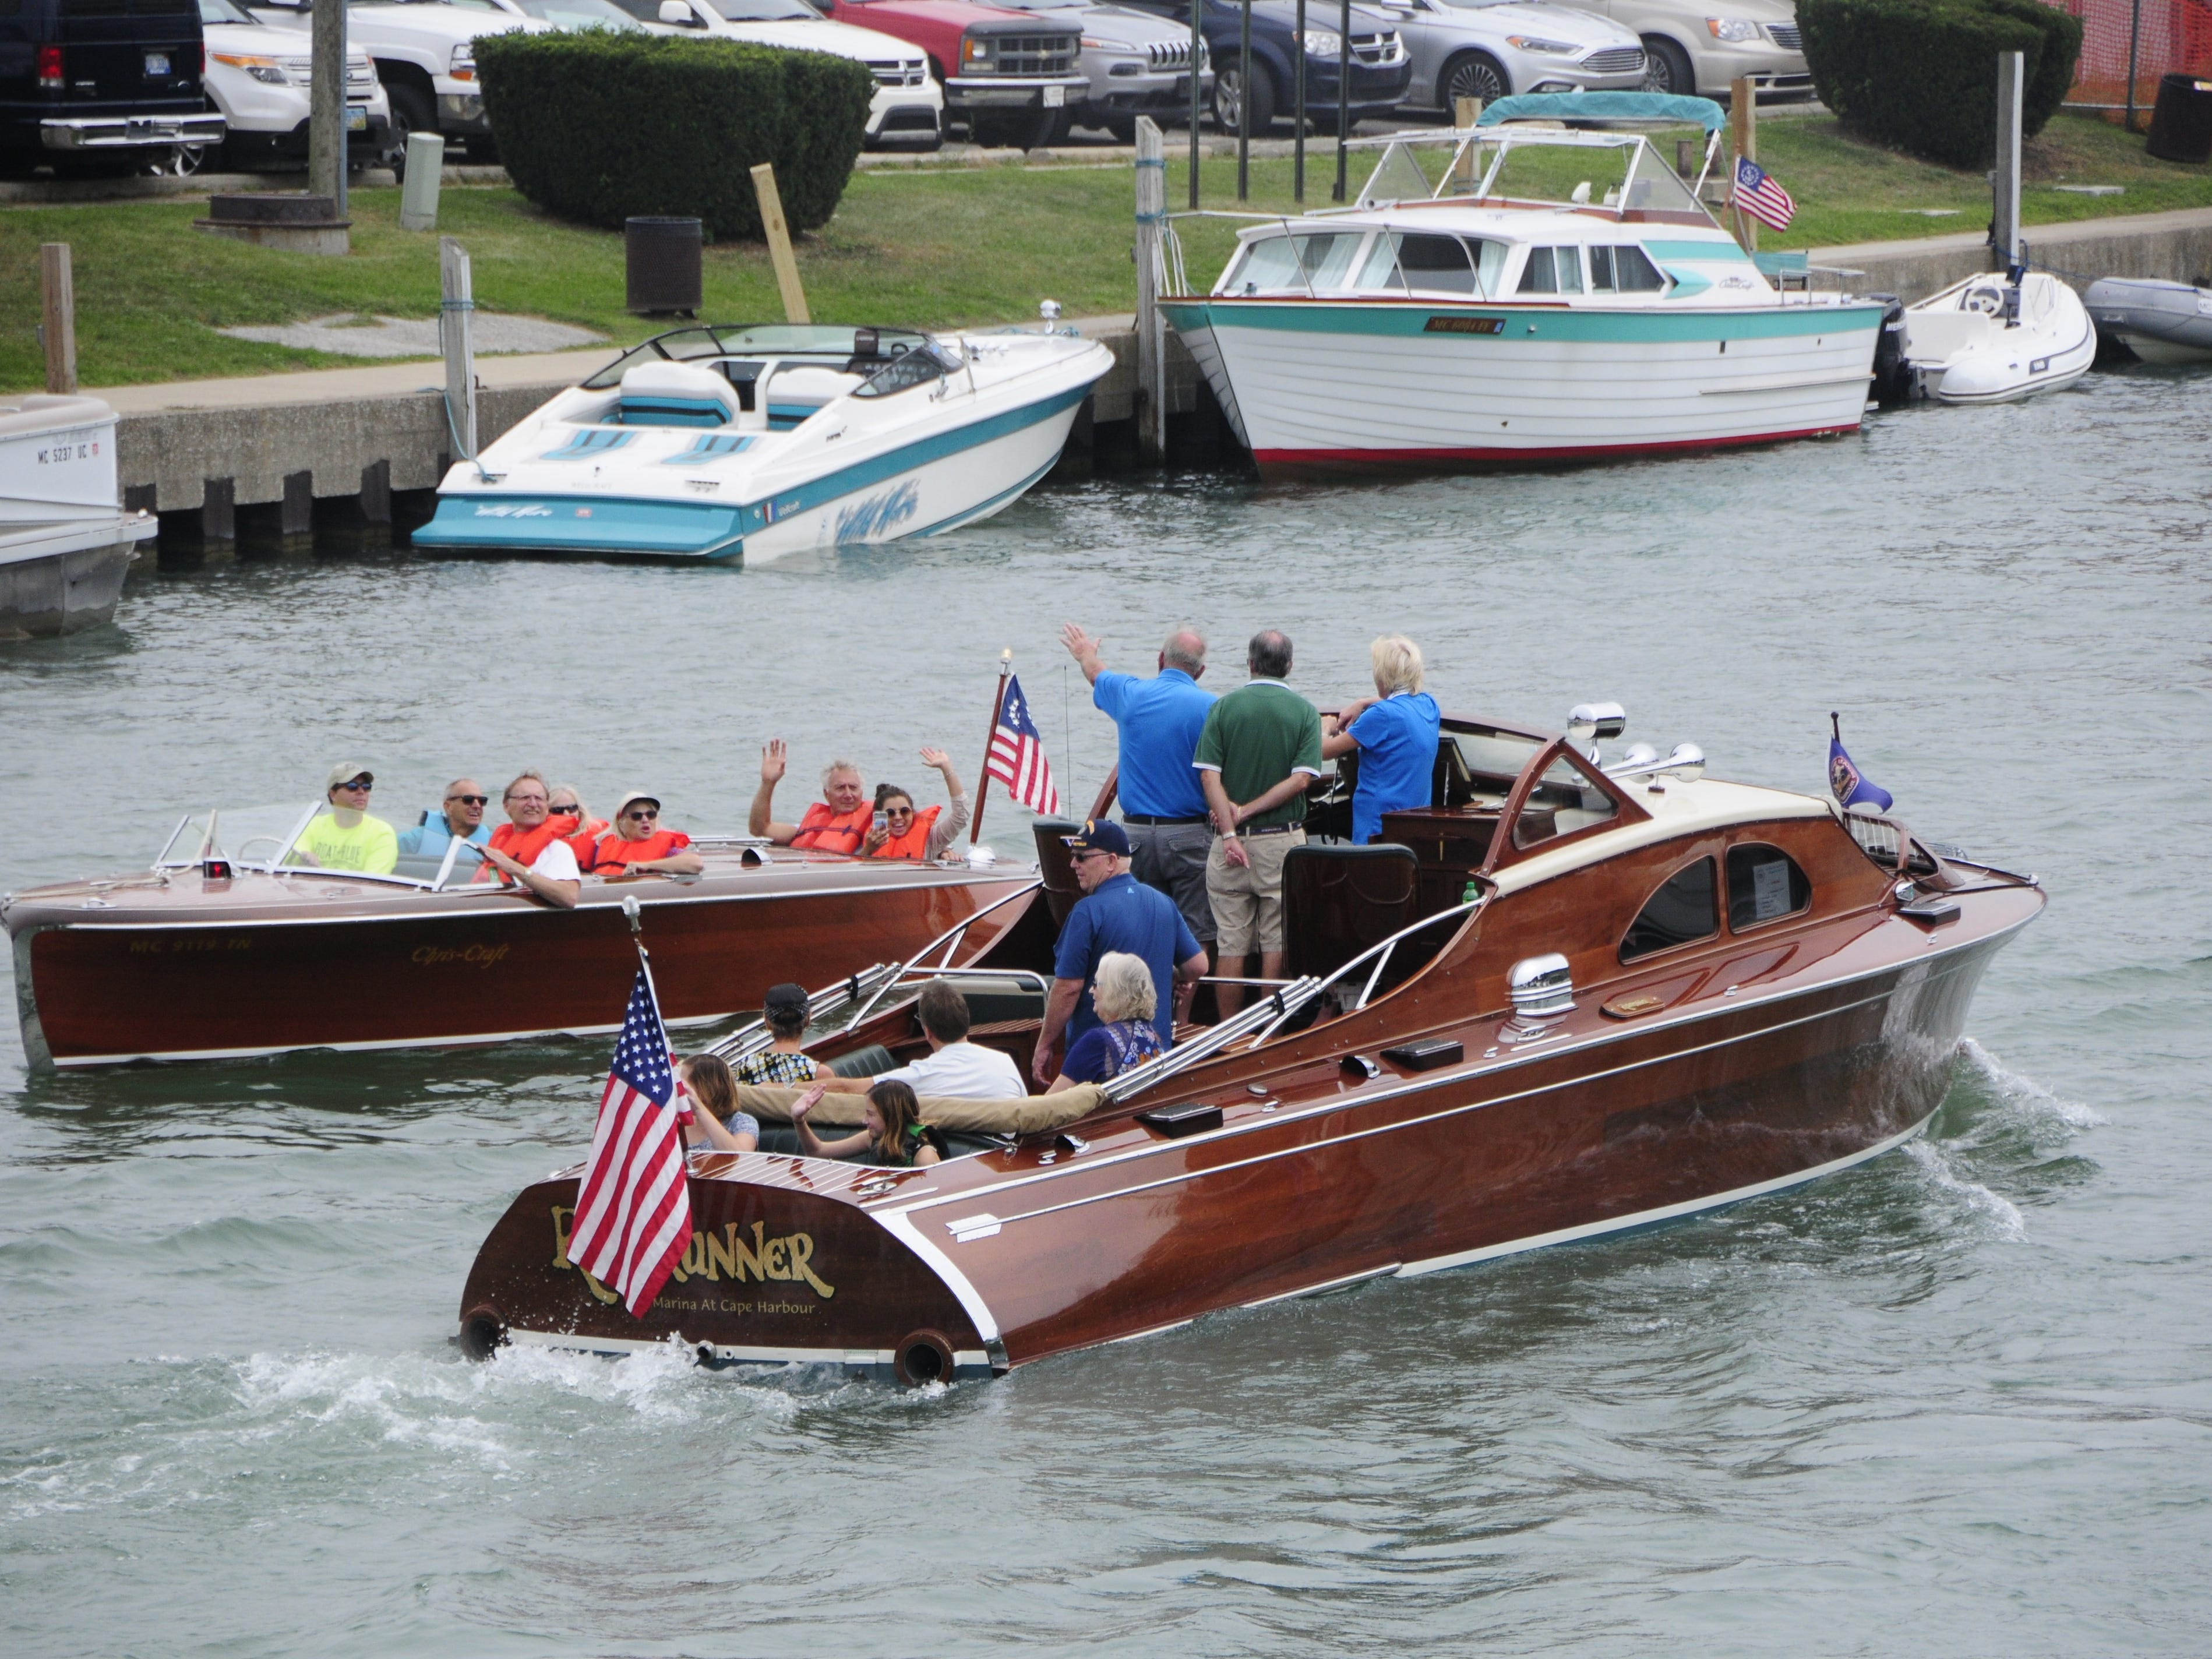 The Rumrunner passes another boat in the Black River during the Antique and Classic Boat Society International Boat Show on Saturday, Sept. 15, 2018.